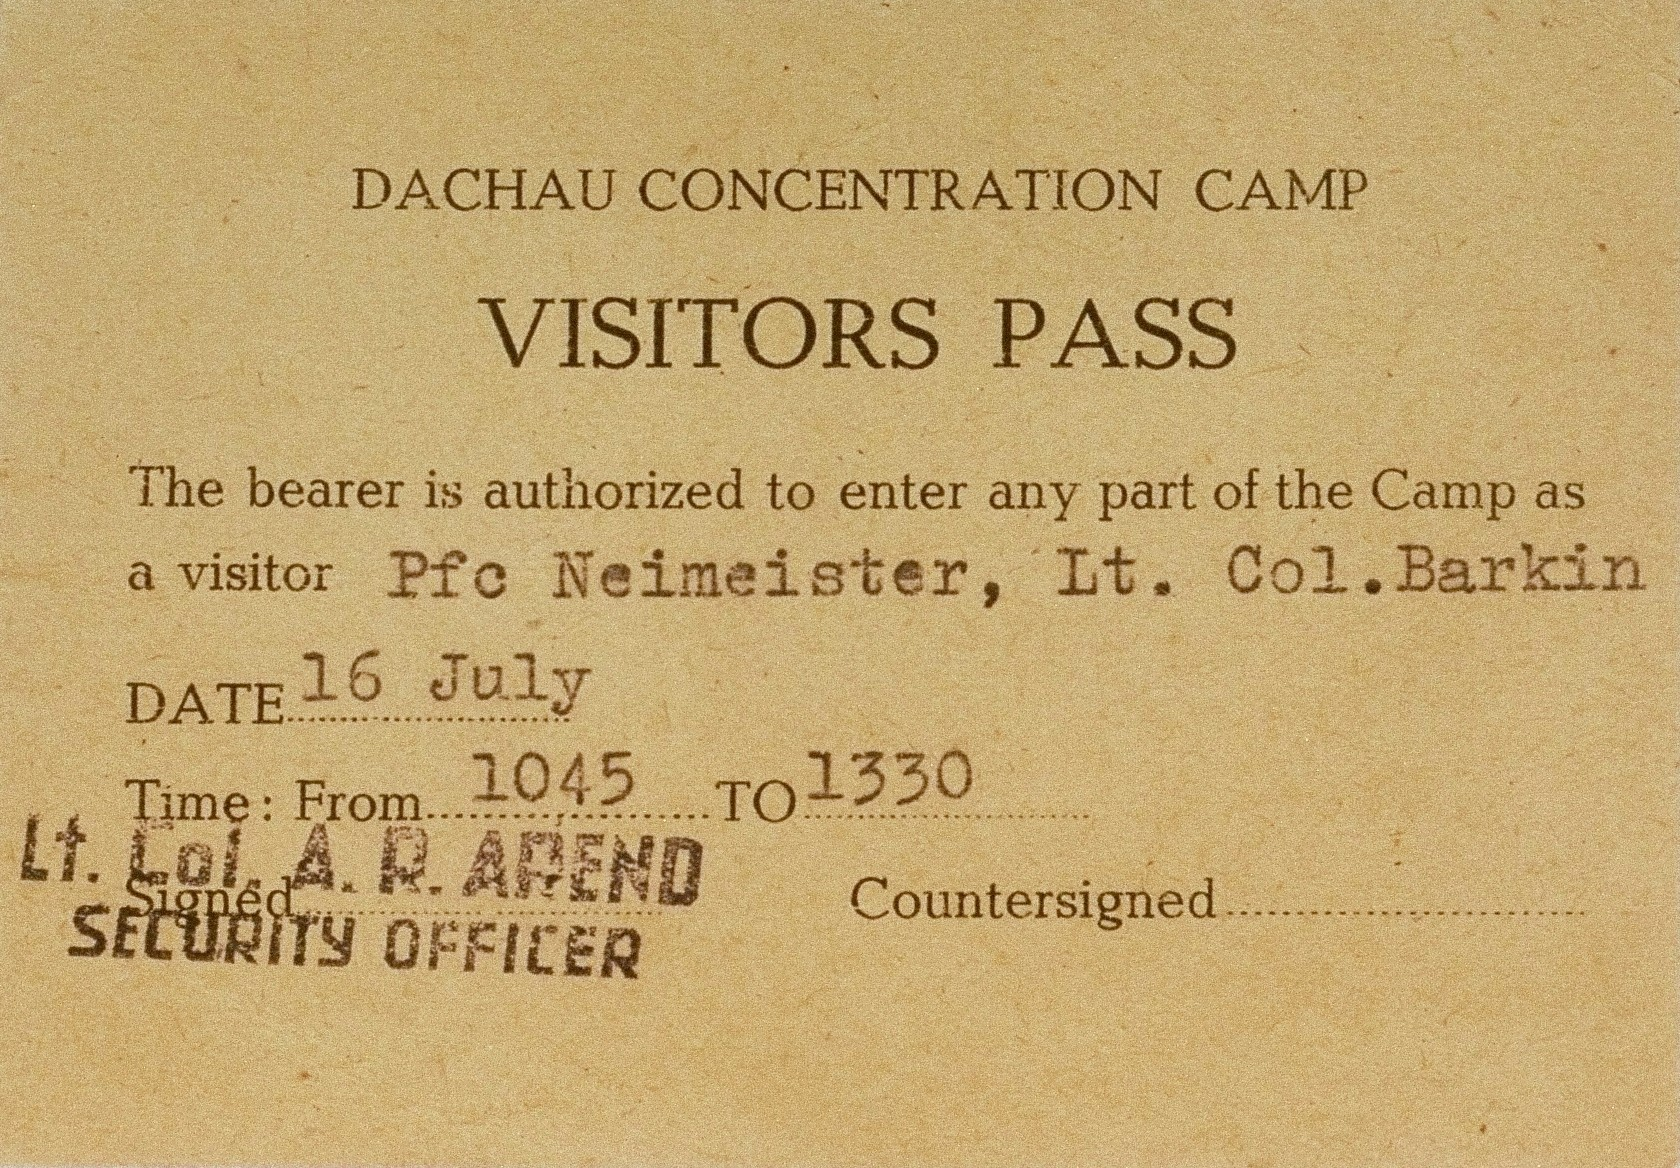 A one day visitor's pass to the military court in Dachau to view the trial of 61 former camp personnel and prisoners from Mauthausen, used by Pfc. Neimeister and Lt. Col. Albert Barkin.